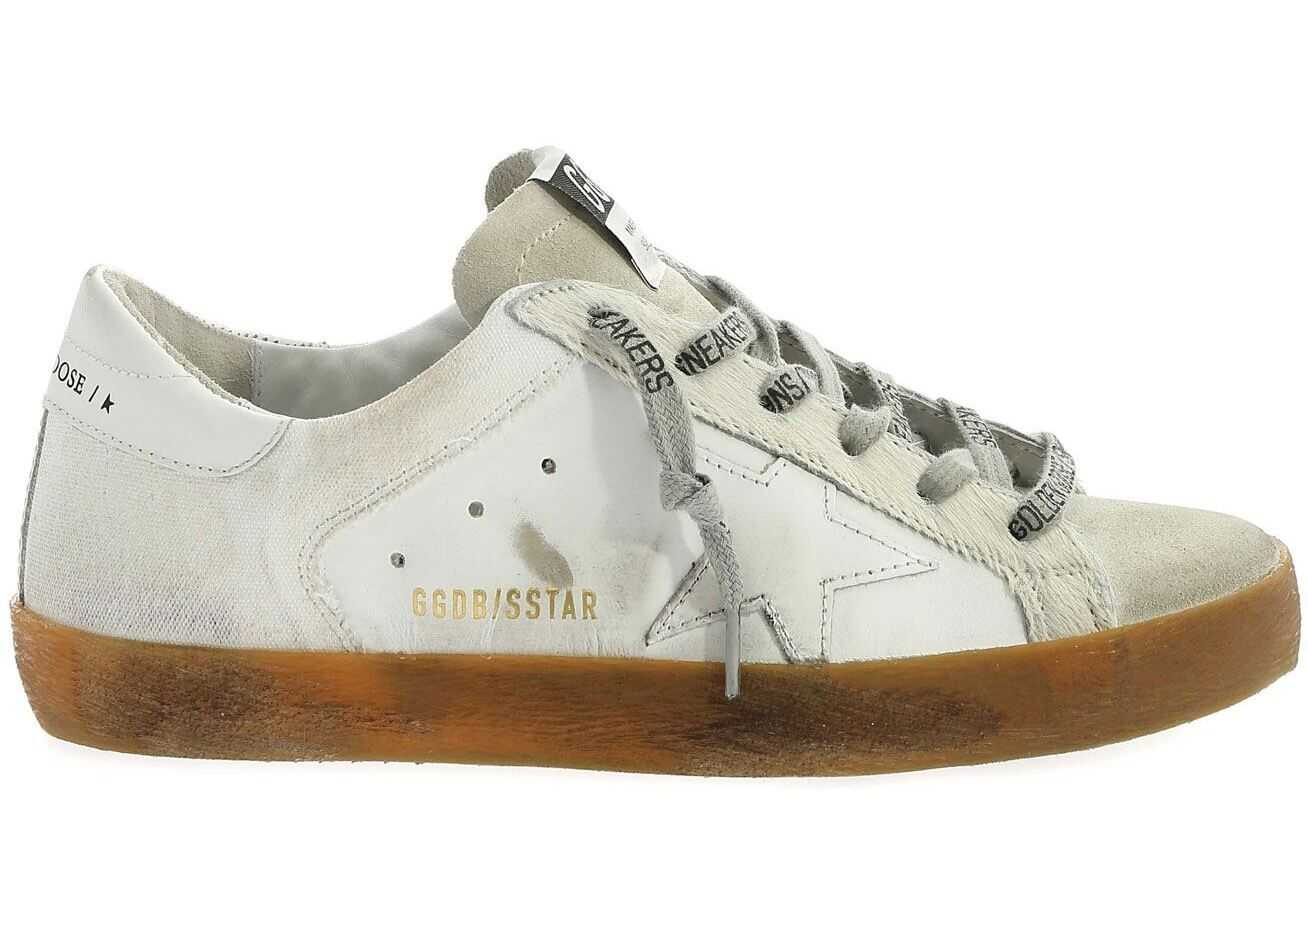 Golden Goose Superstar White Sneakers With Calf Hair Detail White